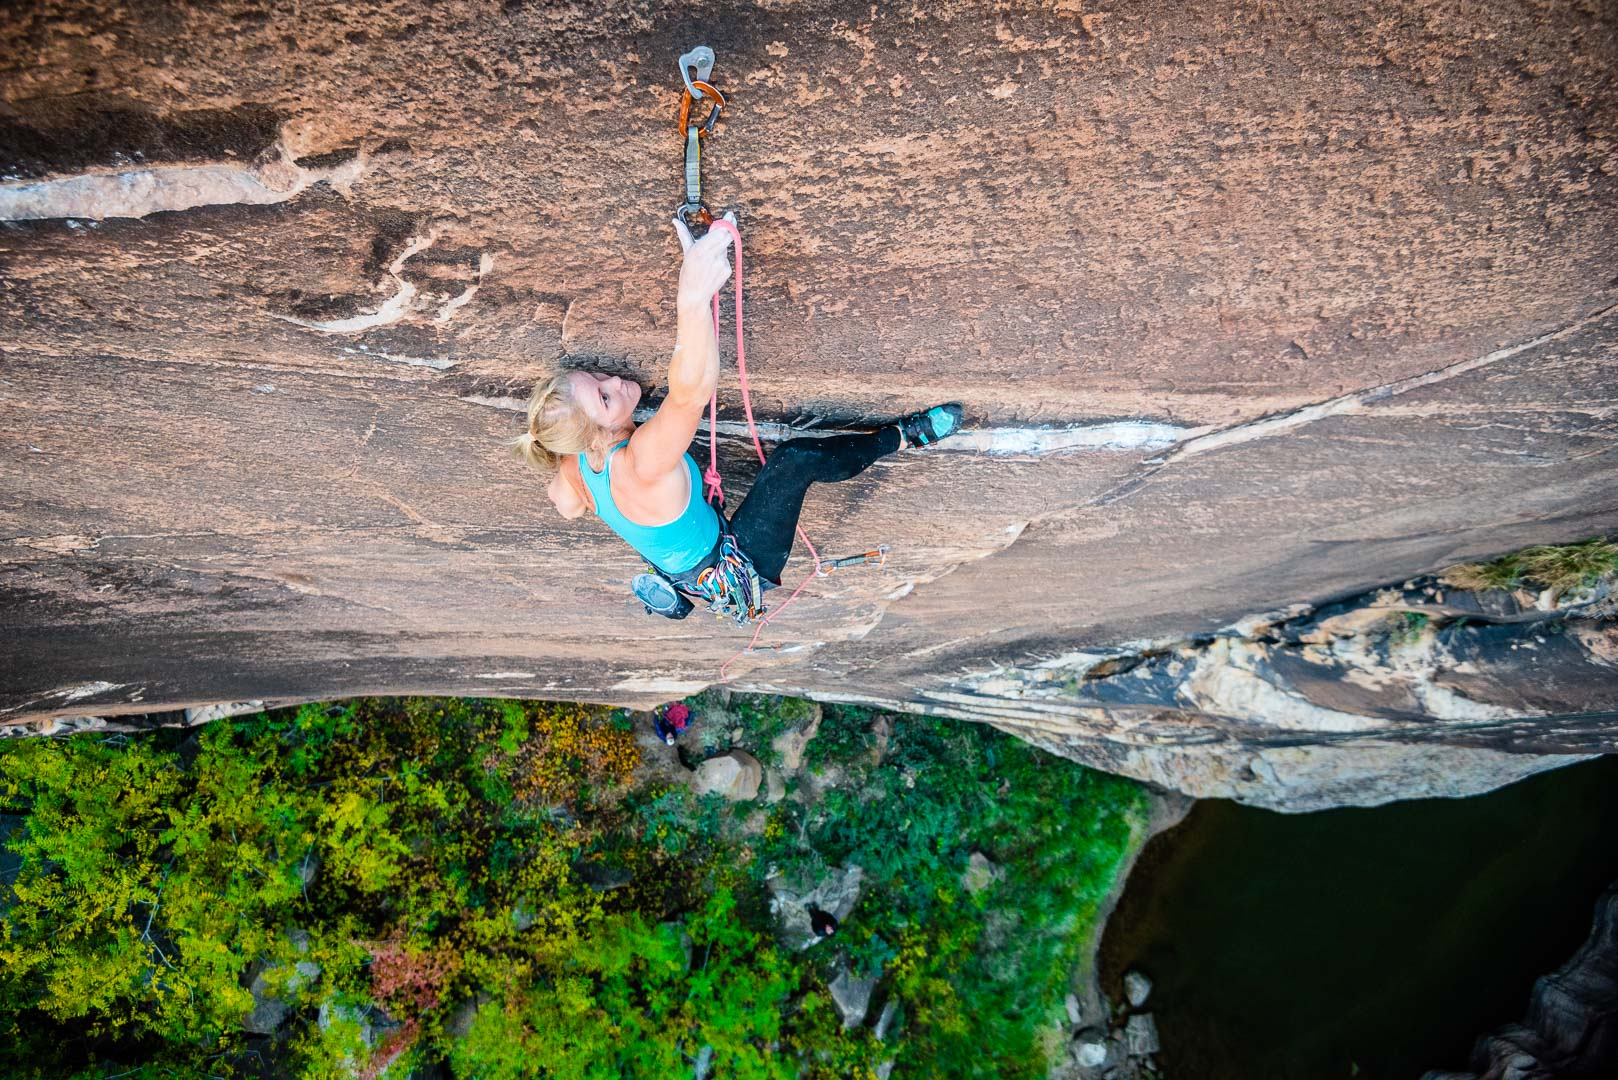 Alyse Dietel on a new route | Winslow, Az